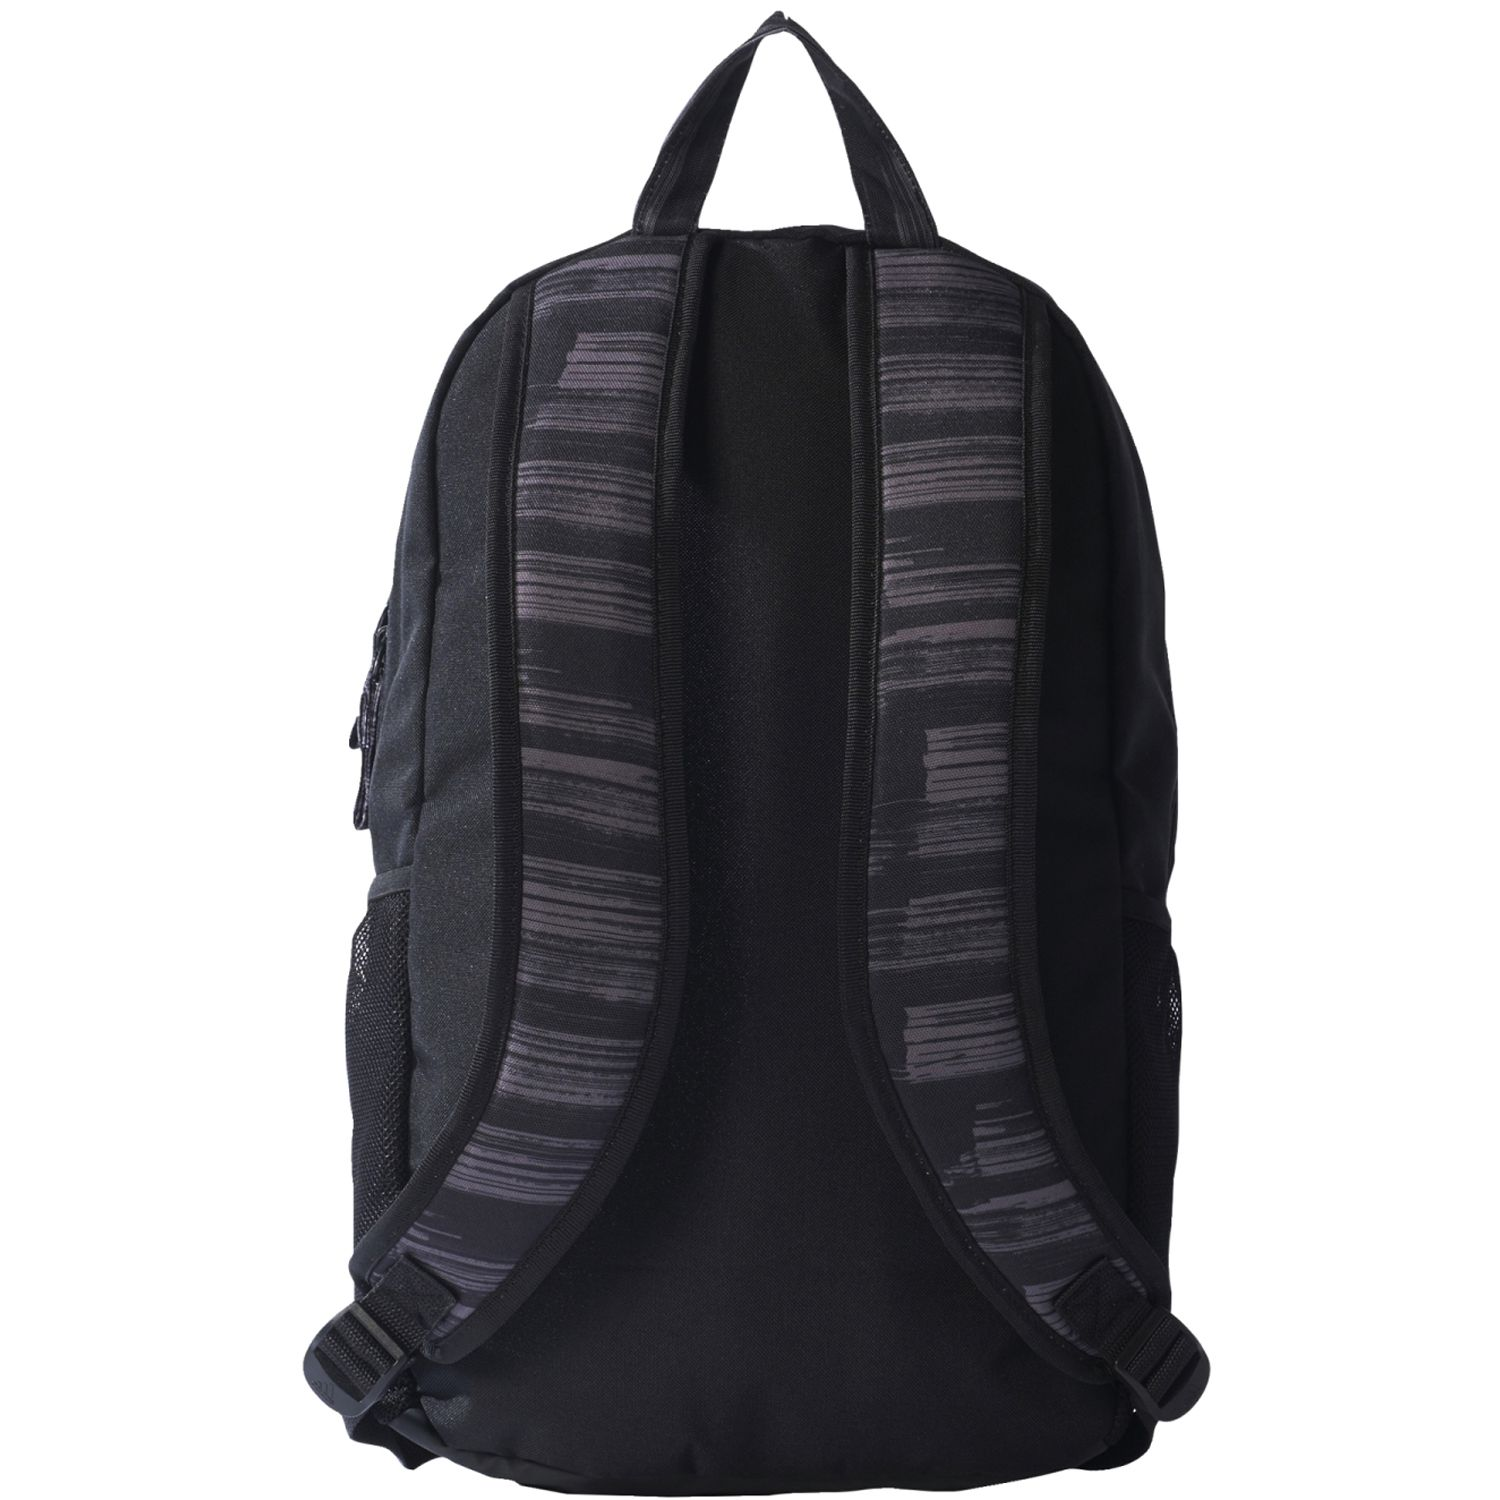 adidas classic m g1 rucksack kaufen bei markenkoffer. Black Bedroom Furniture Sets. Home Design Ideas